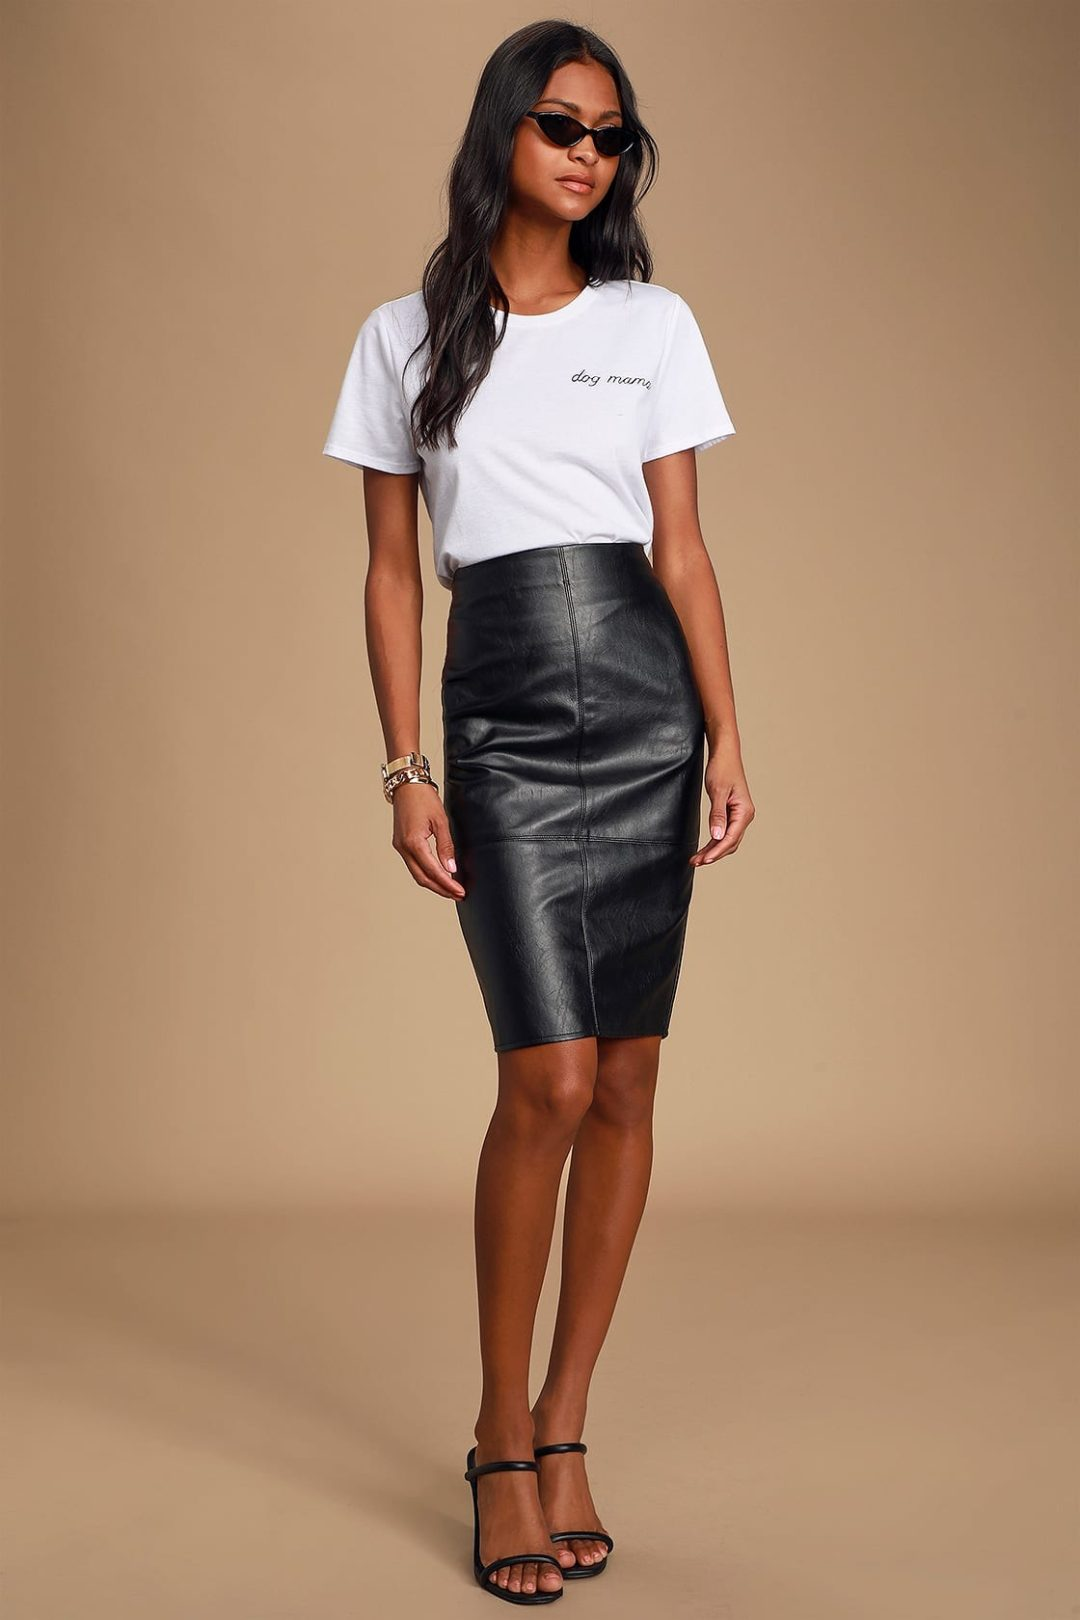 White tee and leather pencil skirt